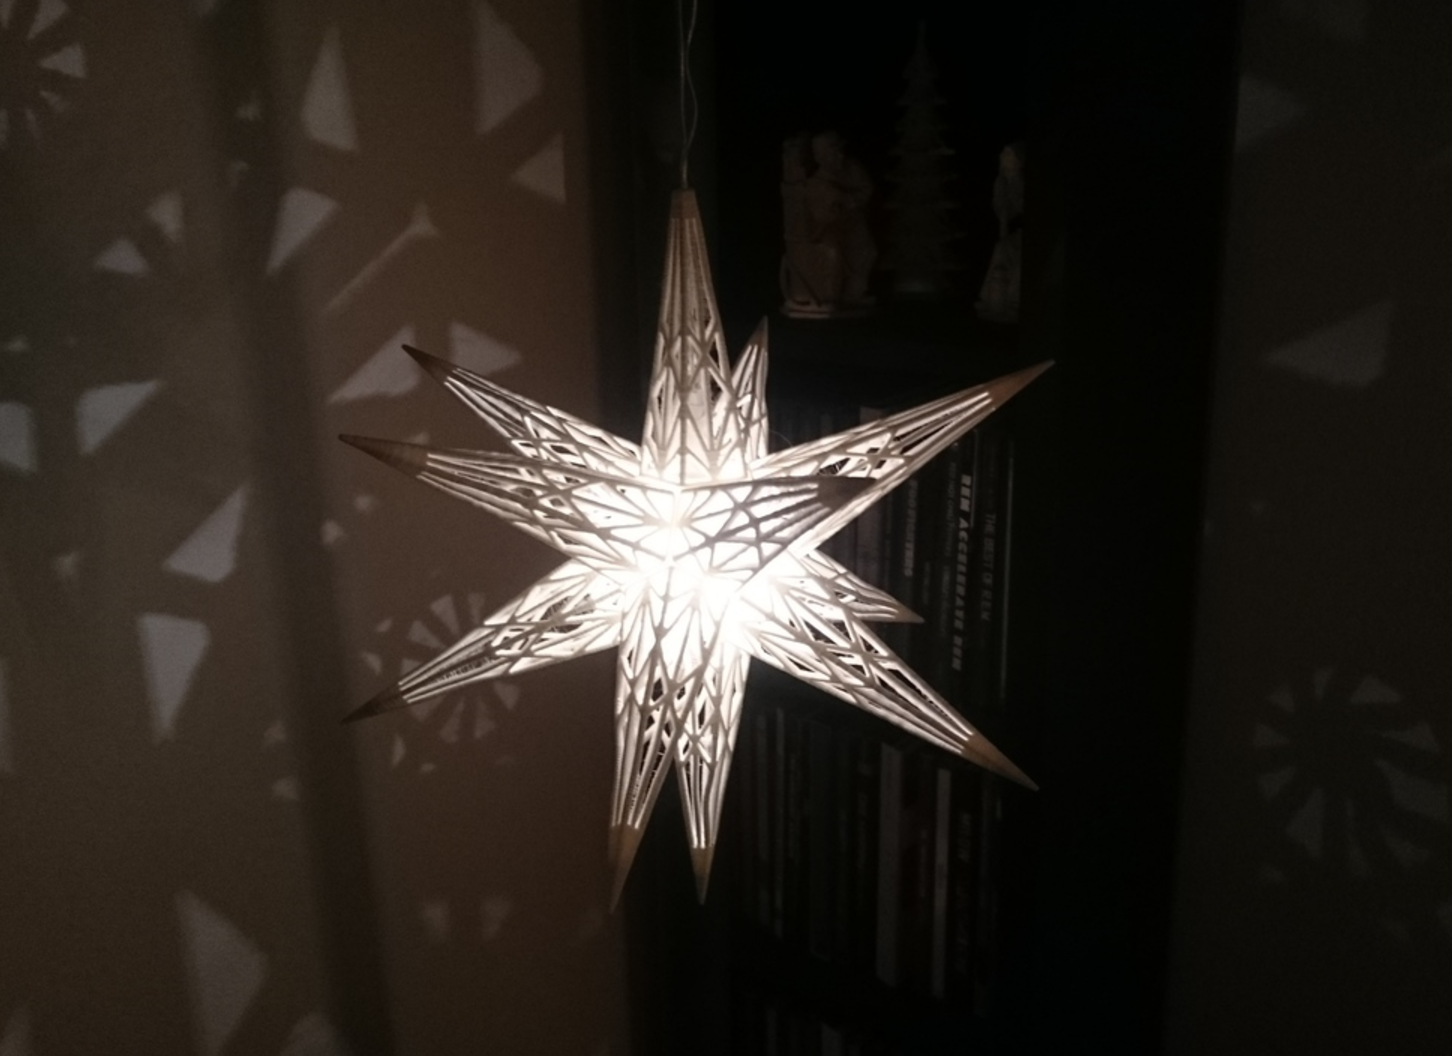 Capture d'écran 2017-06-02 à 14.59.25.png Download free STL file Star Light (Weihnachtsstern) • 3D printable template, 87squirrels